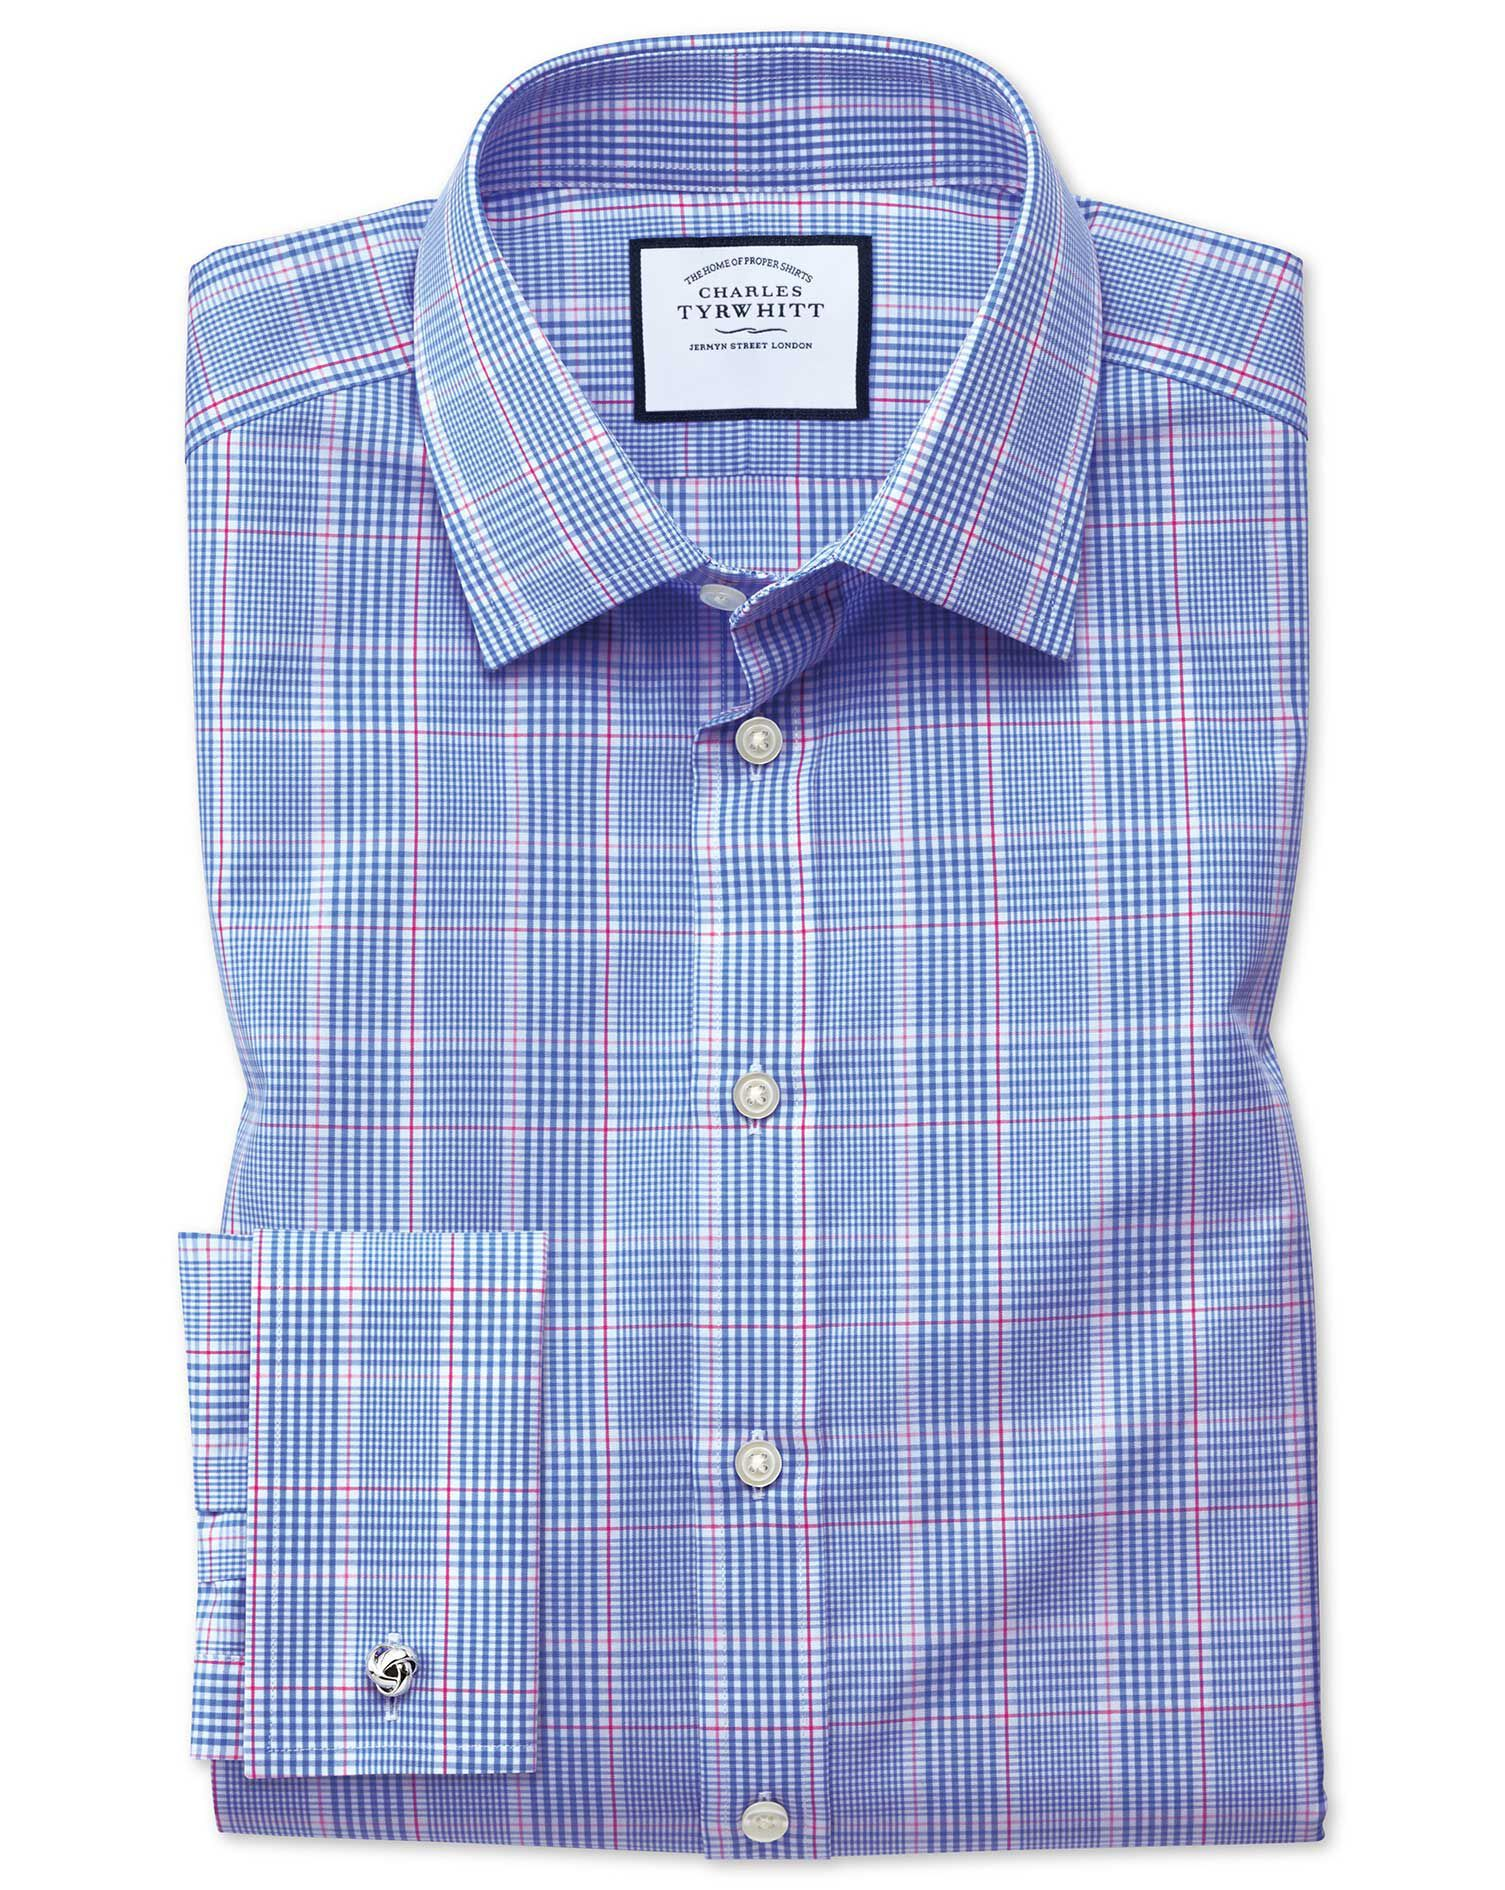 Extra Slim Fit Prince Of Wales Blue Cotton Formal Shirt Double Cuff Size 15.5/35 by Charles Tyrwhitt